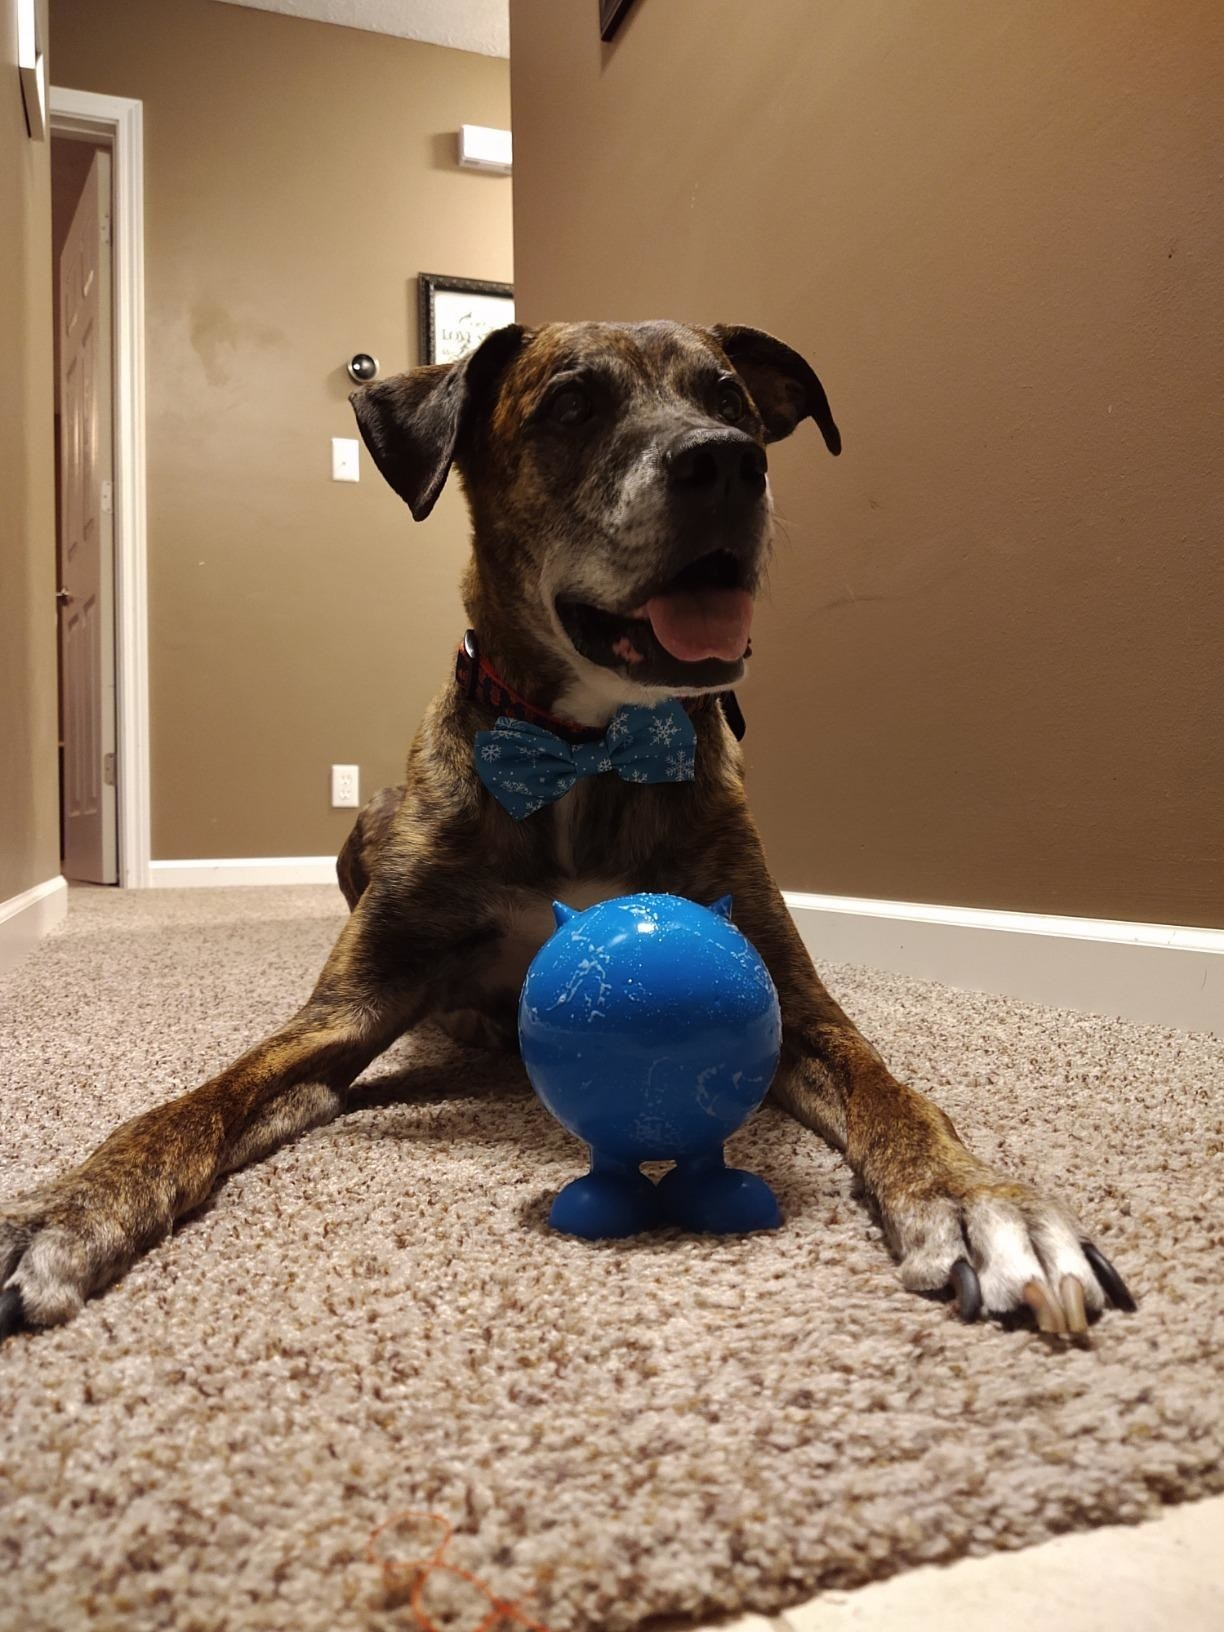 A brown and white dog sitting on carpet with a blue ball between his front legs